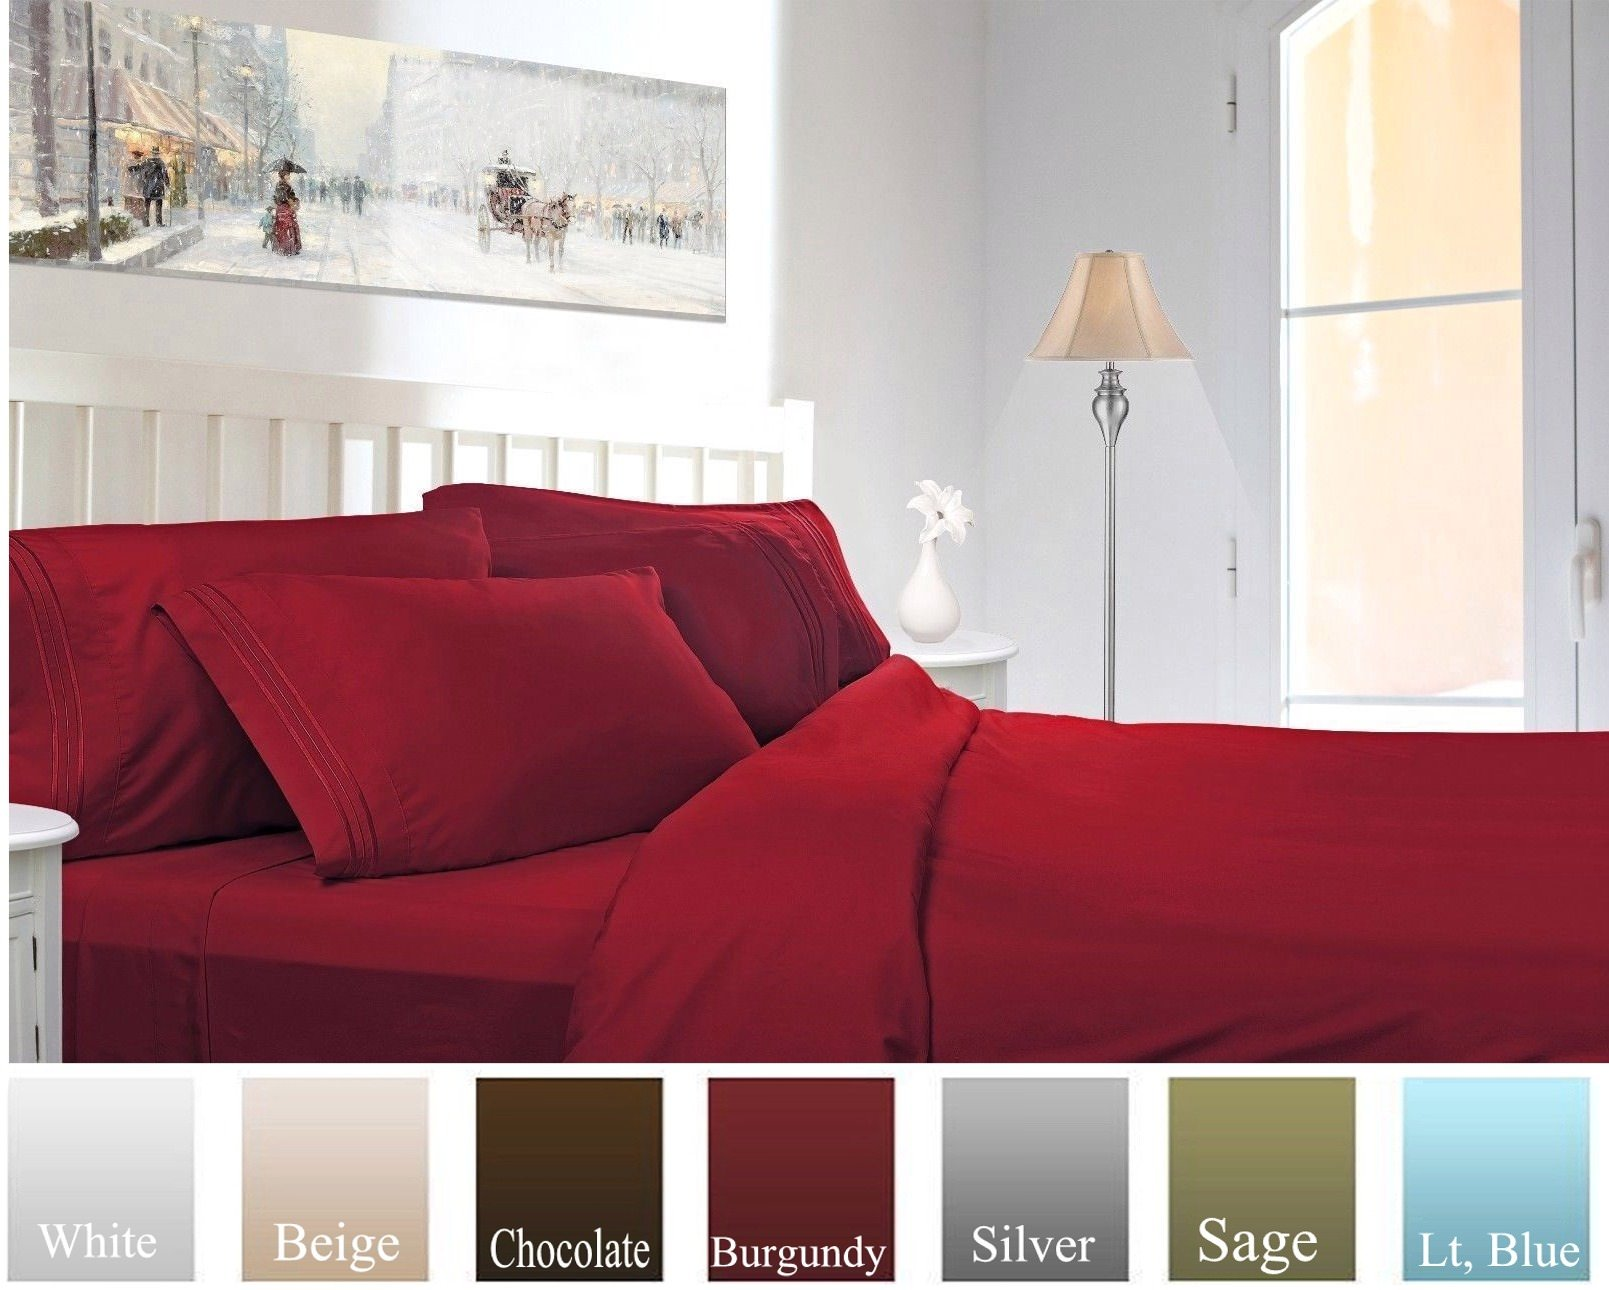 Ruthy's Textile Bed Sheet Set - Hotel Luxury Brushed Microfiber 1800 Bedding - Wrinkle, Fade, Stain Resistant - Hypoallergenic, Soft - Deep Pockets Sheets & Pillow Case Set - 4 Piece (Burgundy, Twin)